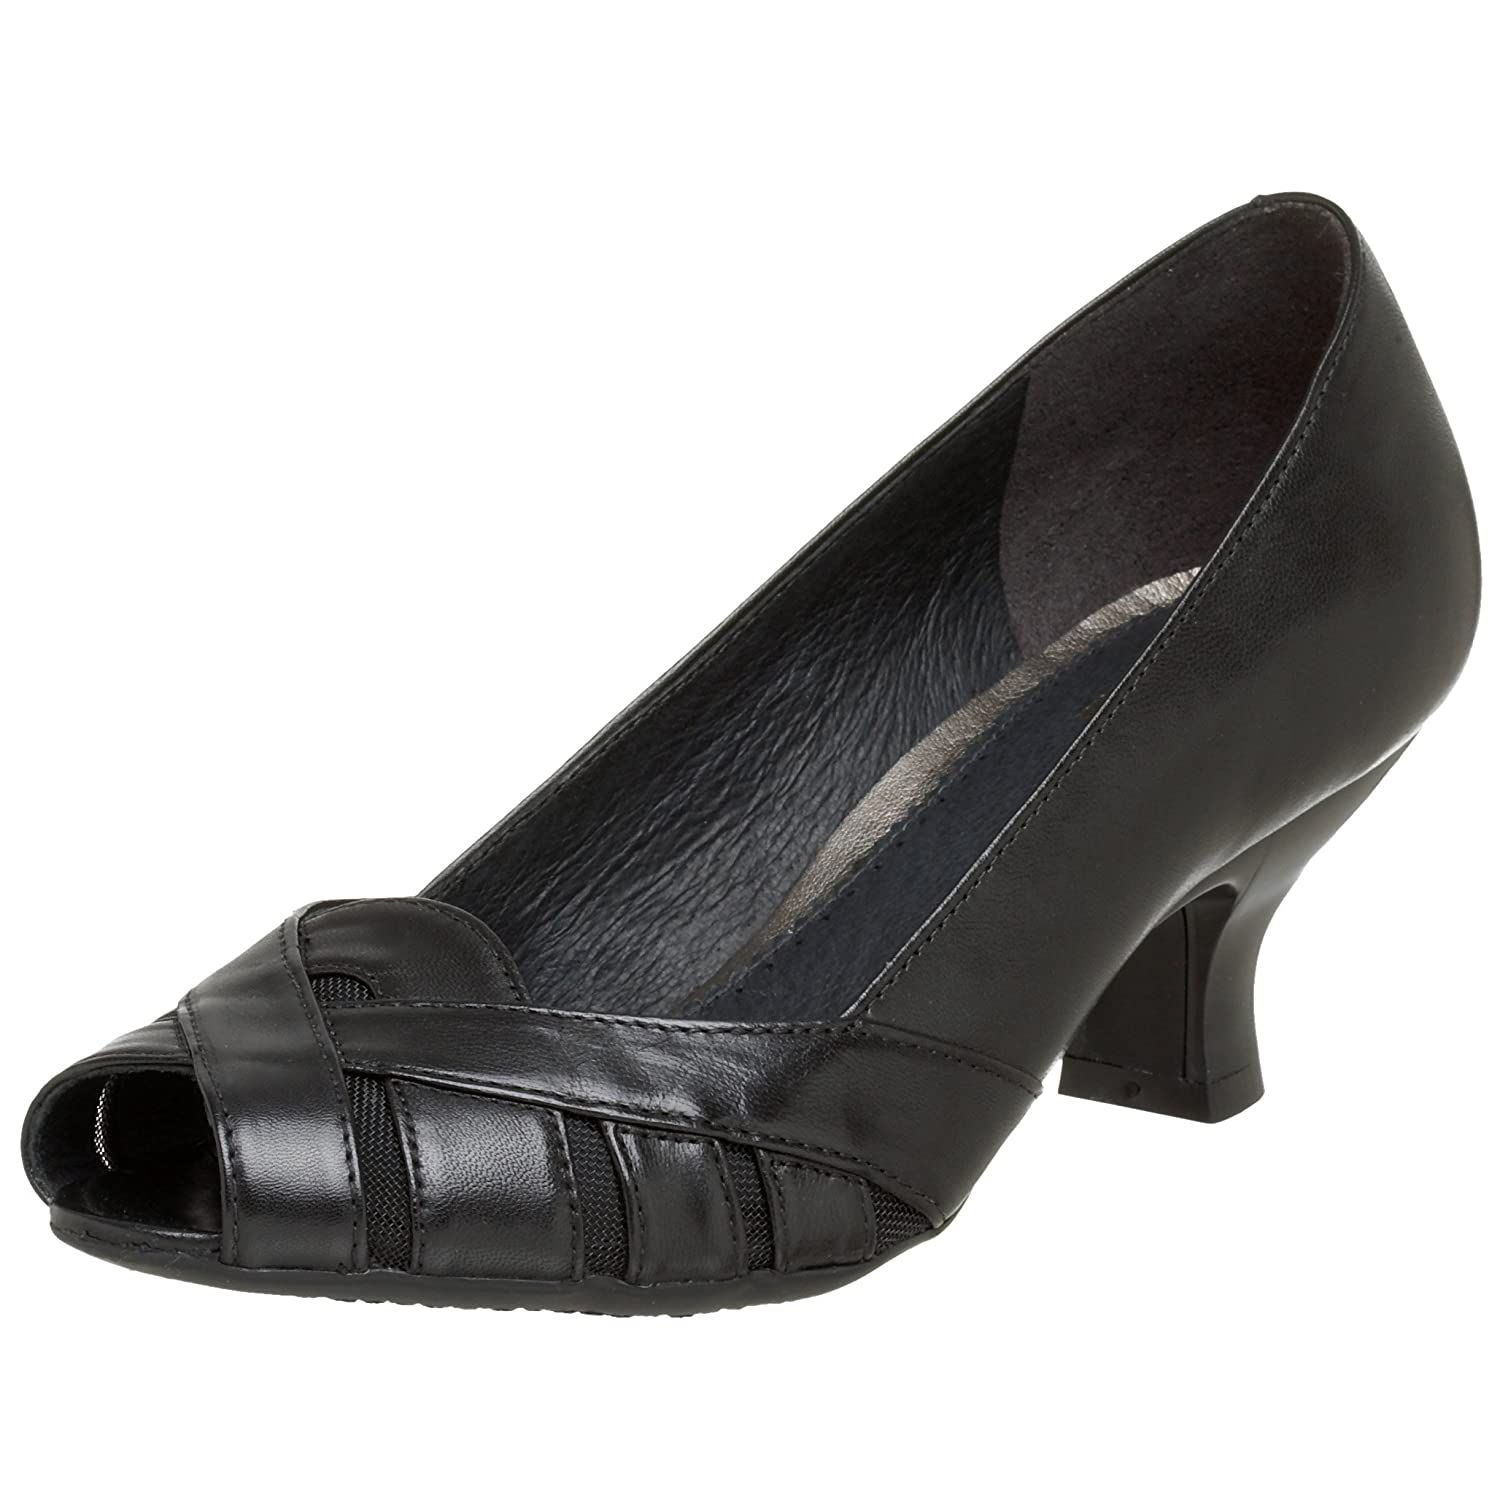 Clarks Apple Star Pump - Free Overnight Shipping & Return Shipping: Endless.com :  clarks heels shoes peeptoe